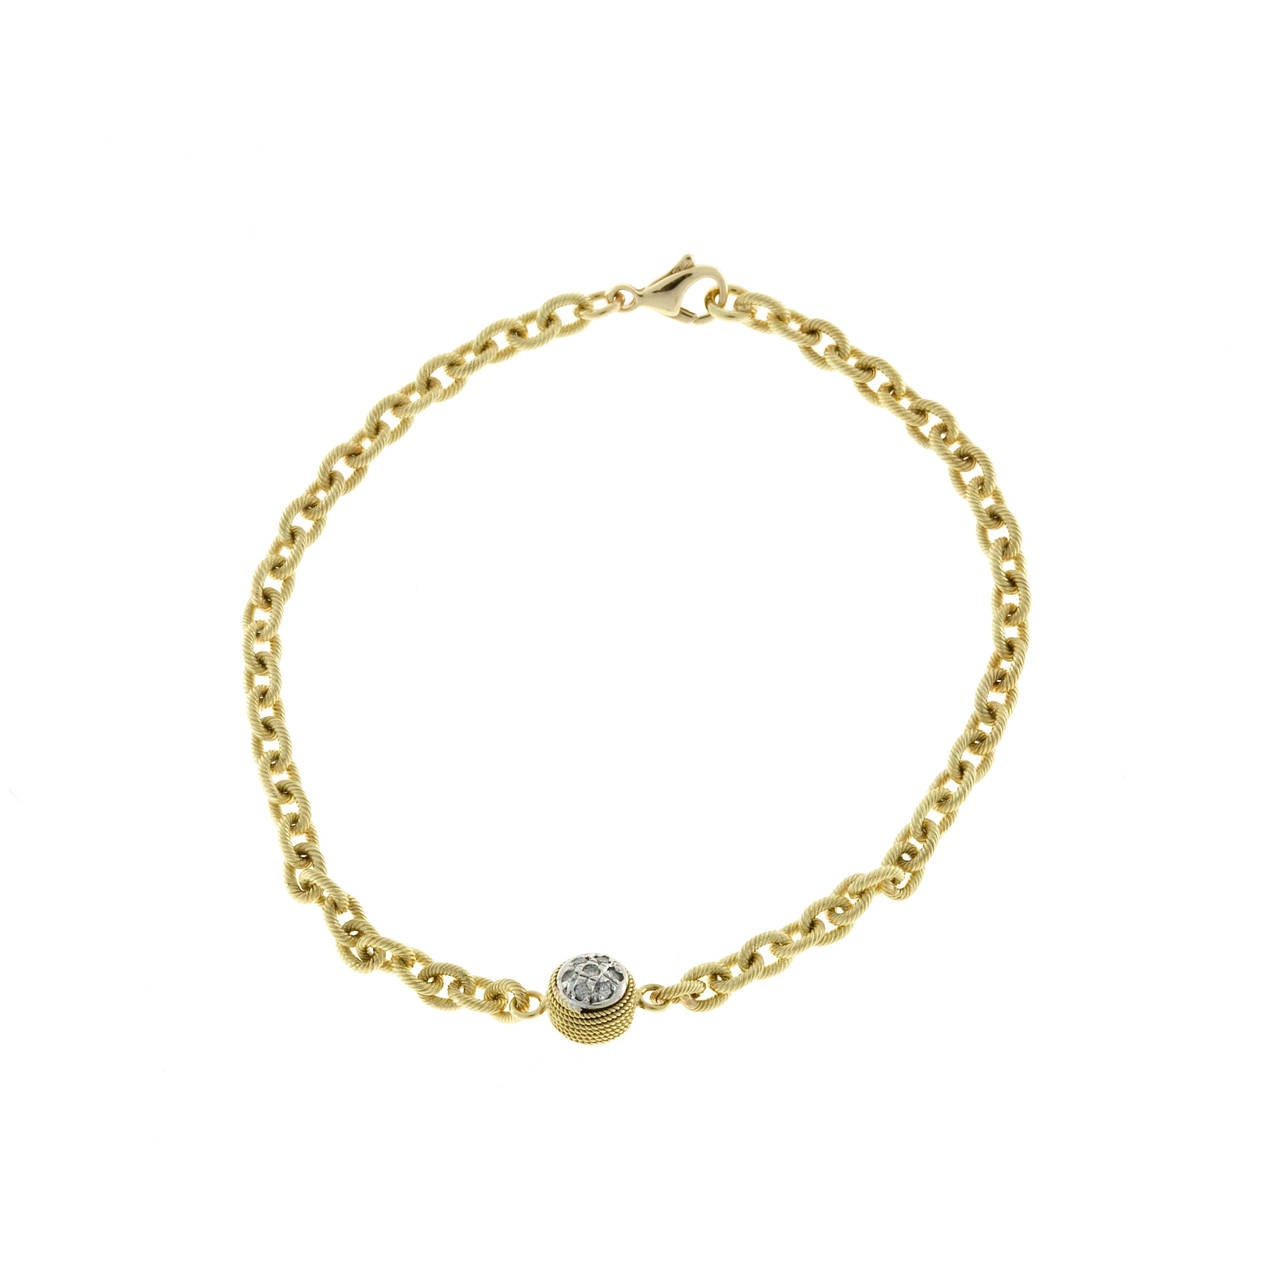 Beautiful two sided 18k yellow gold textured bracelet with diamond ball center.